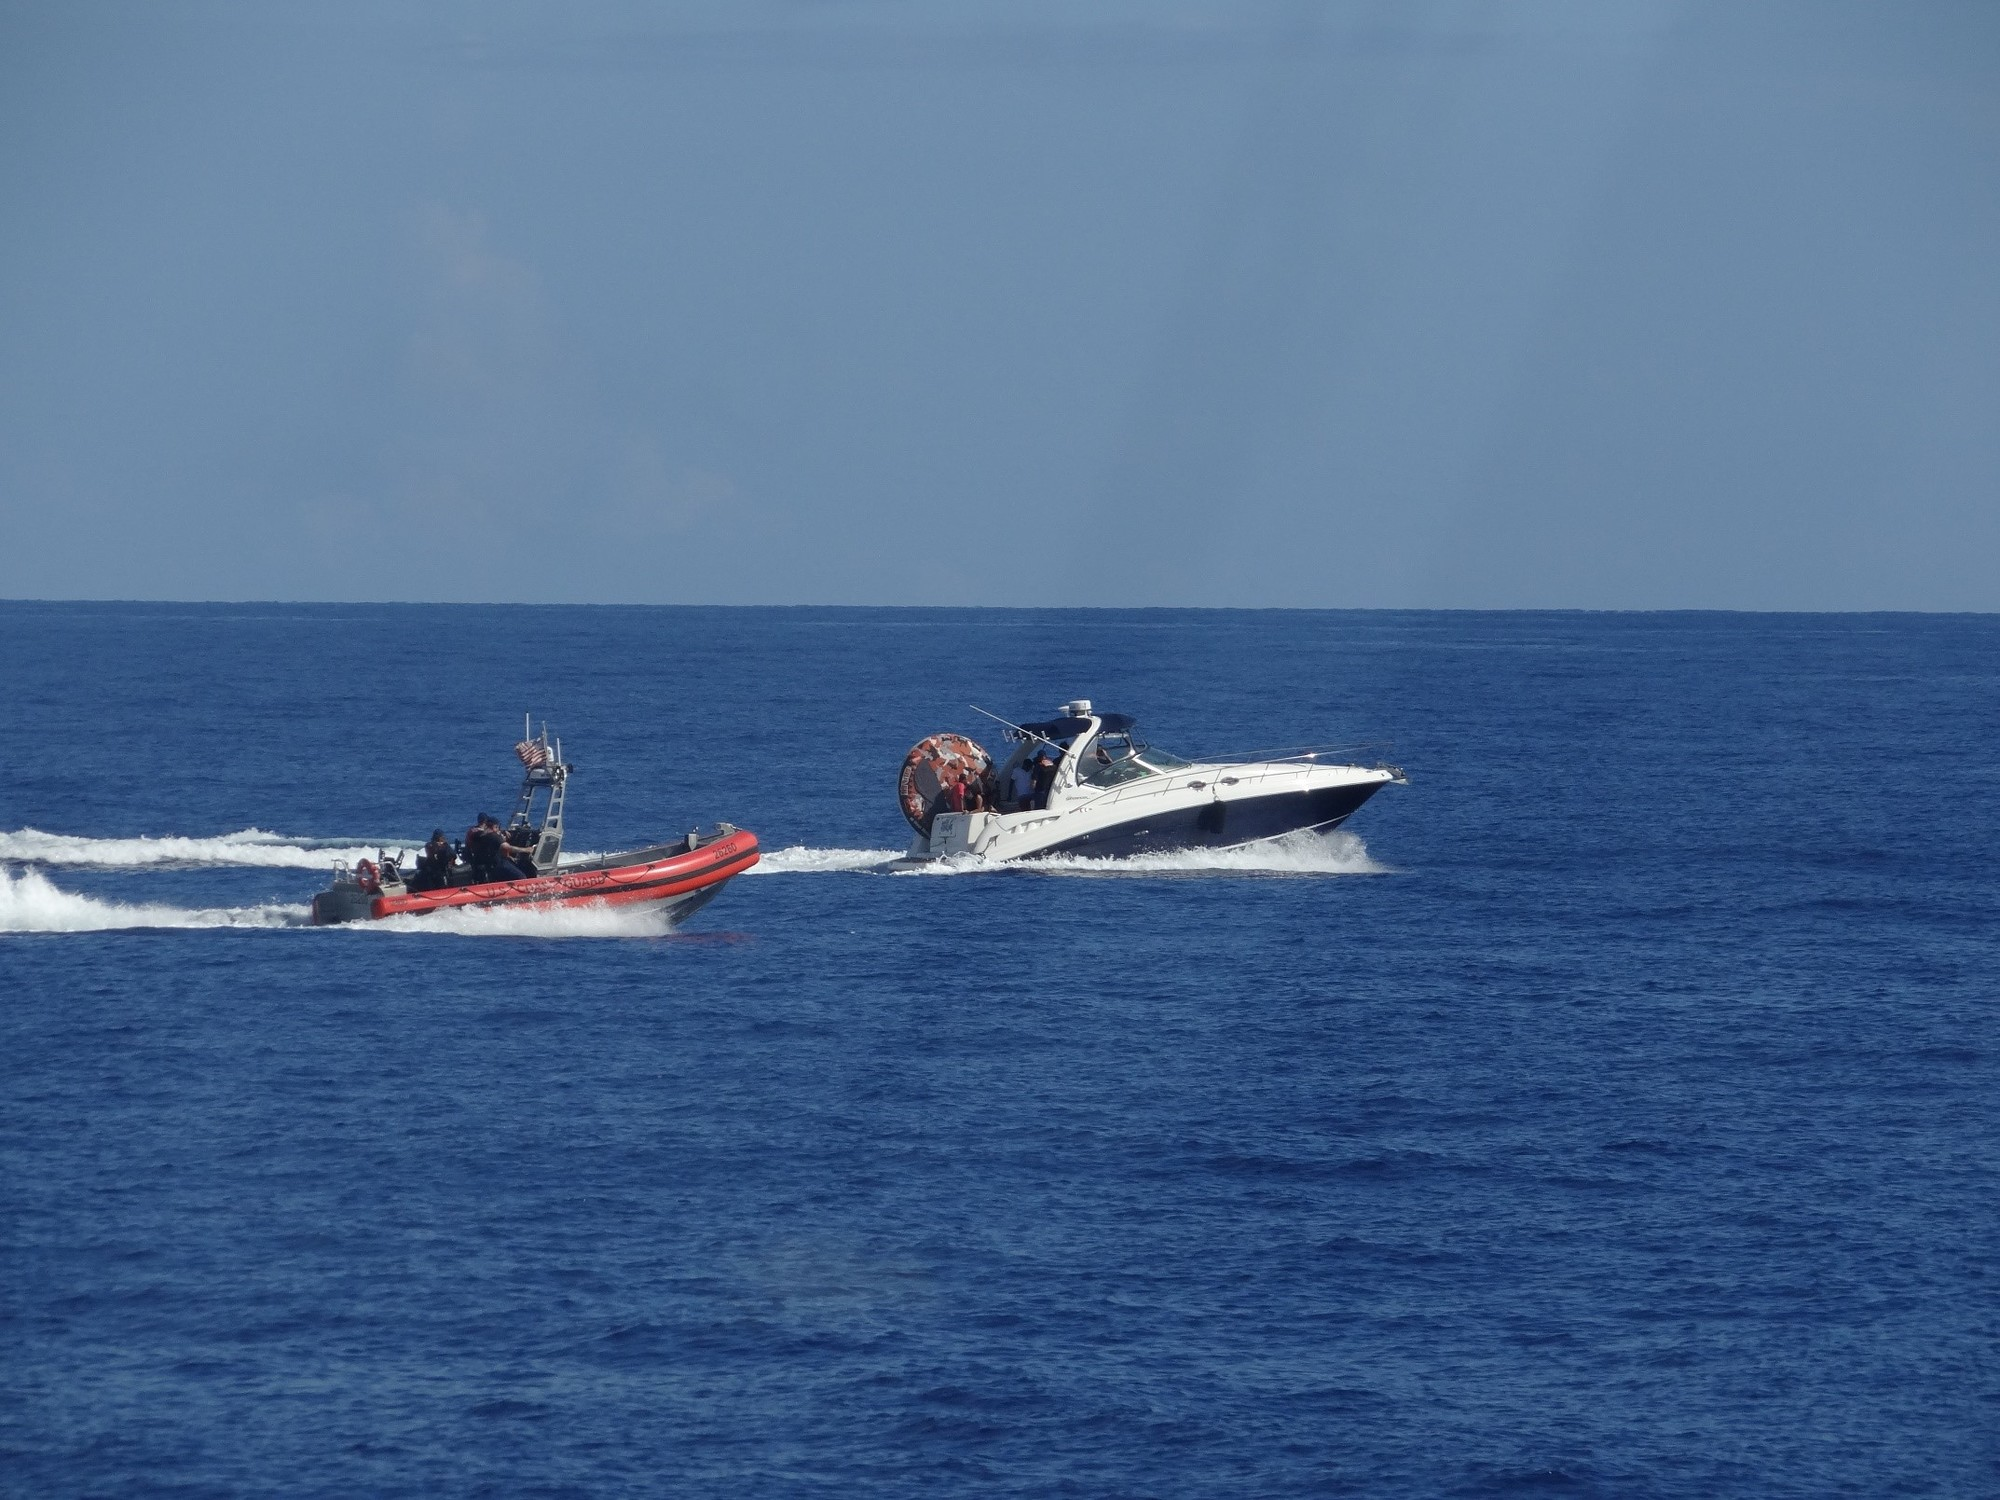 PHOTO RELEASE: Coast Guard interdicts 4 migrants, 2 suspected smugglers 30 miles east of Hollywood